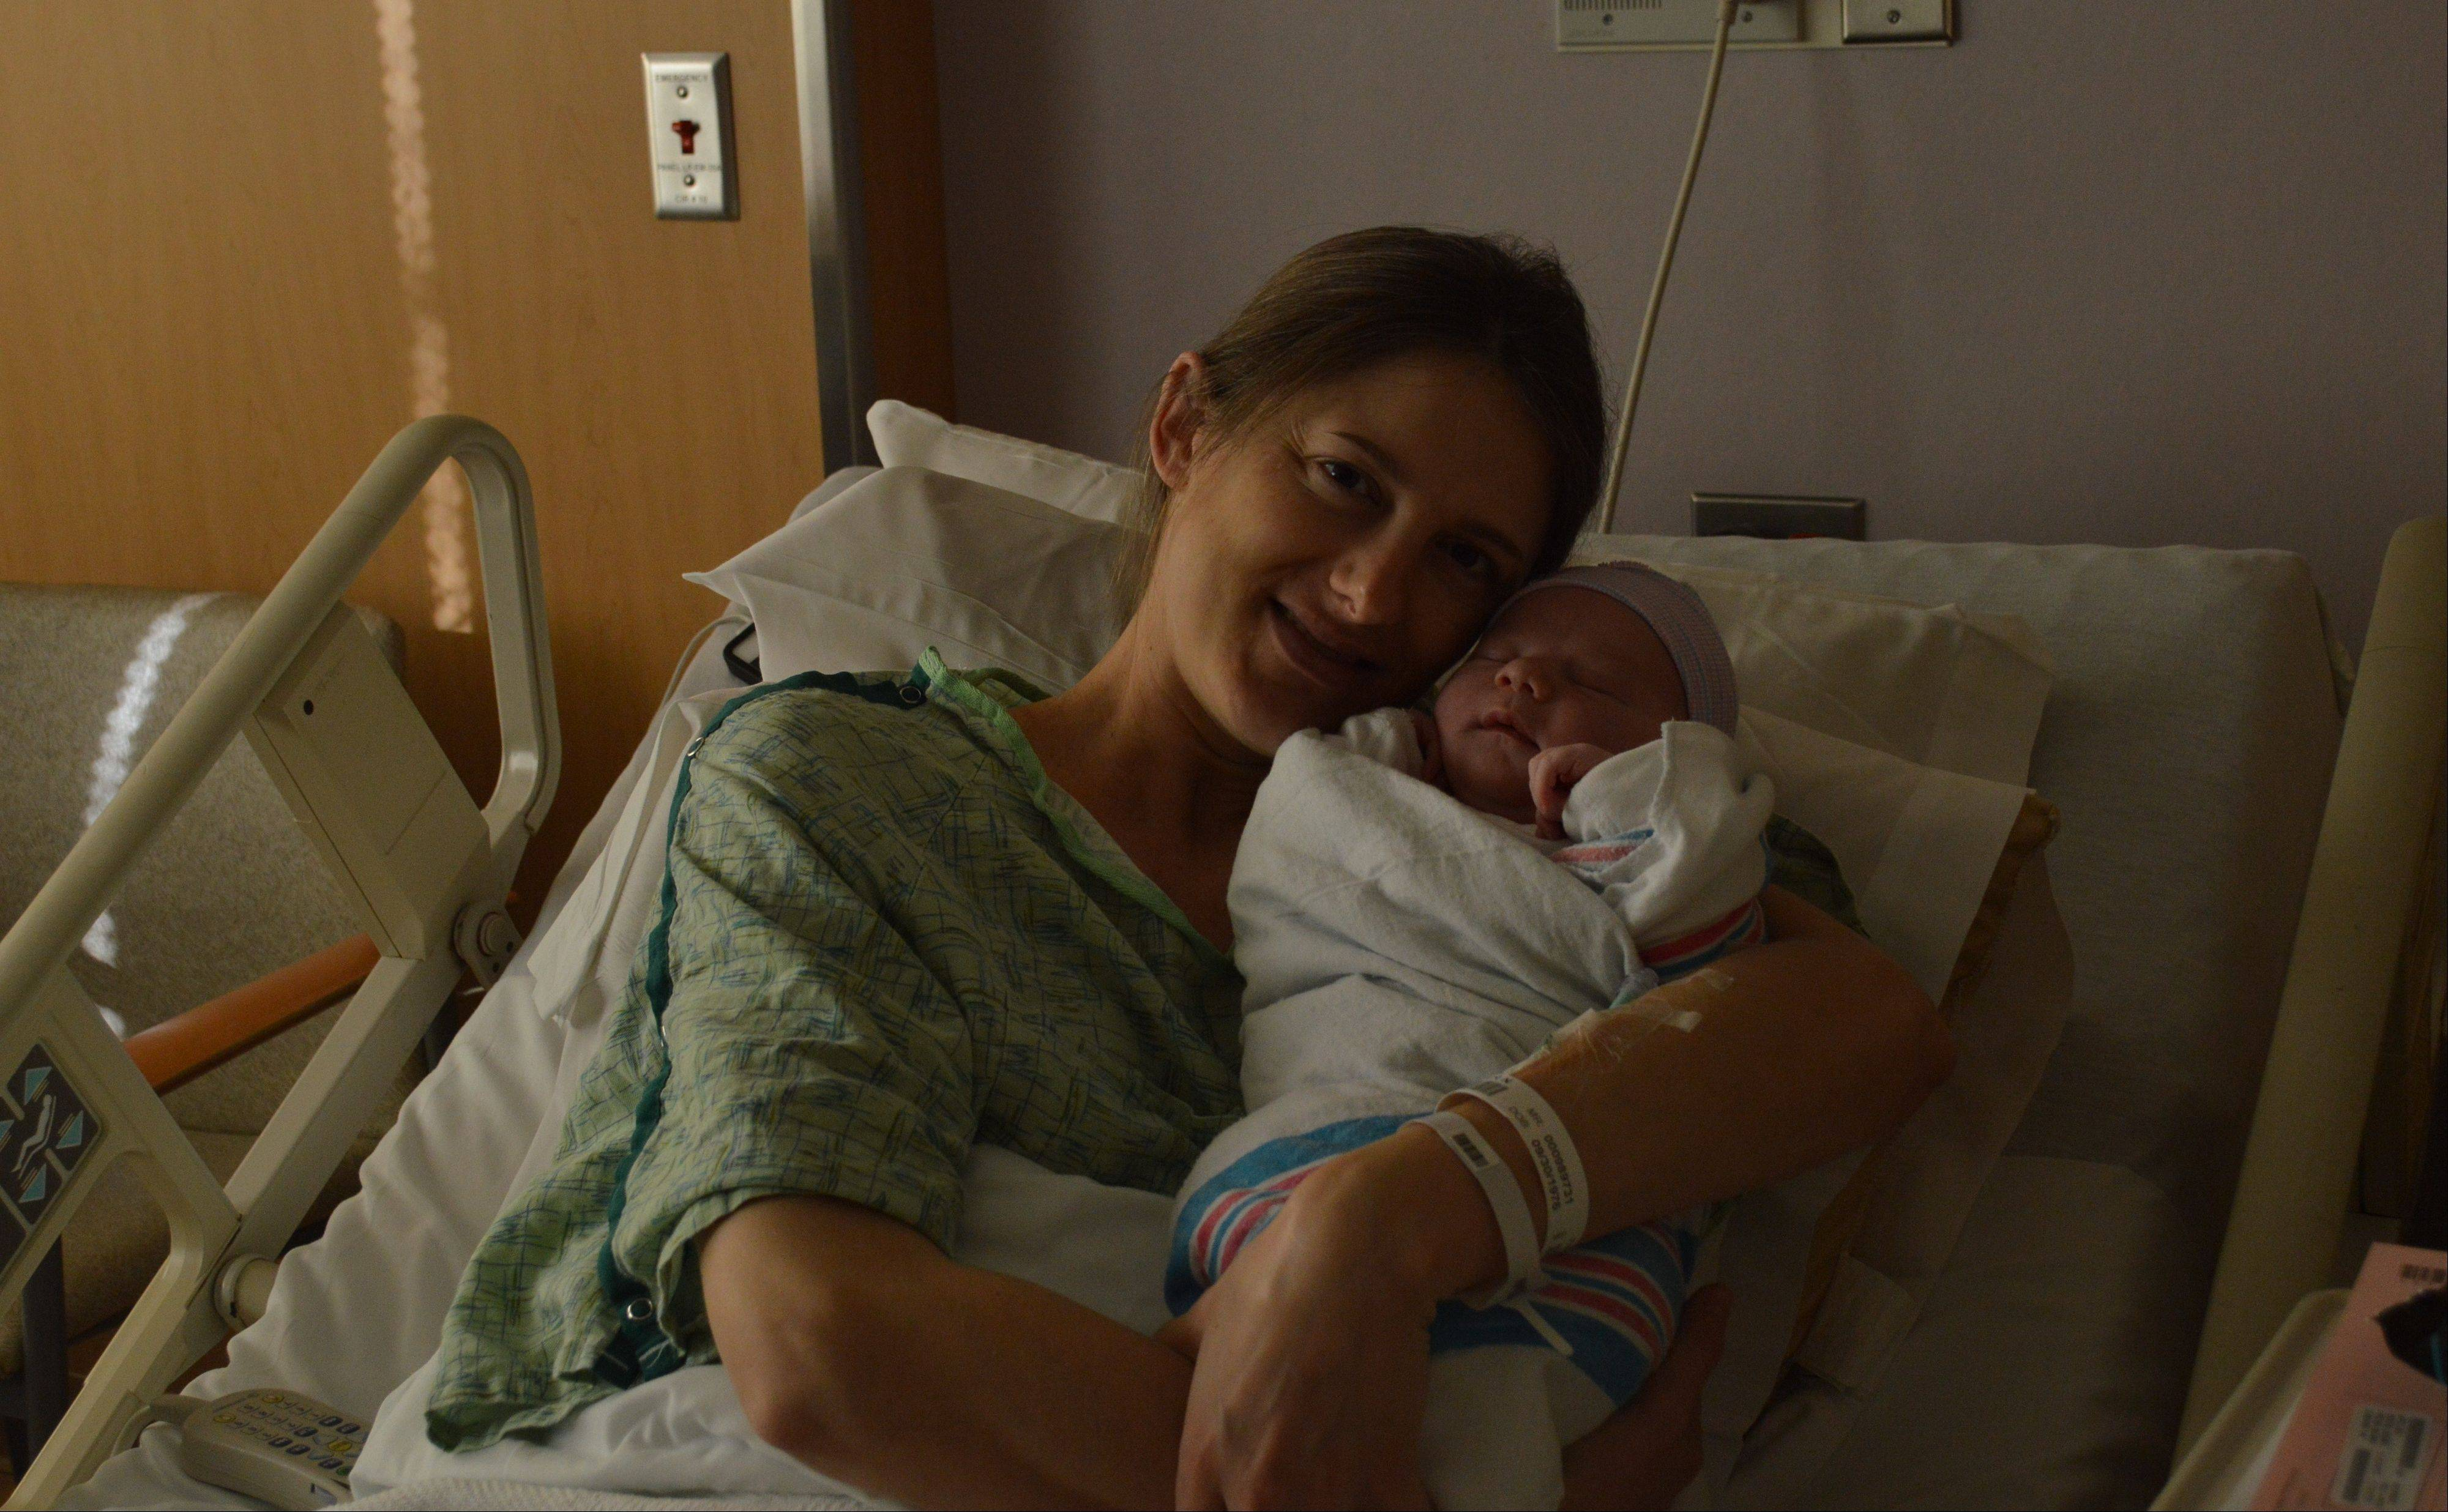 Jennifer White�s son, Joshua, was born at 10 a.m. on 11/12/13 at Advocate Good Samaritan Hospital in Downers Grove. The healthy baby boy was supposed to arrive a week earlier.